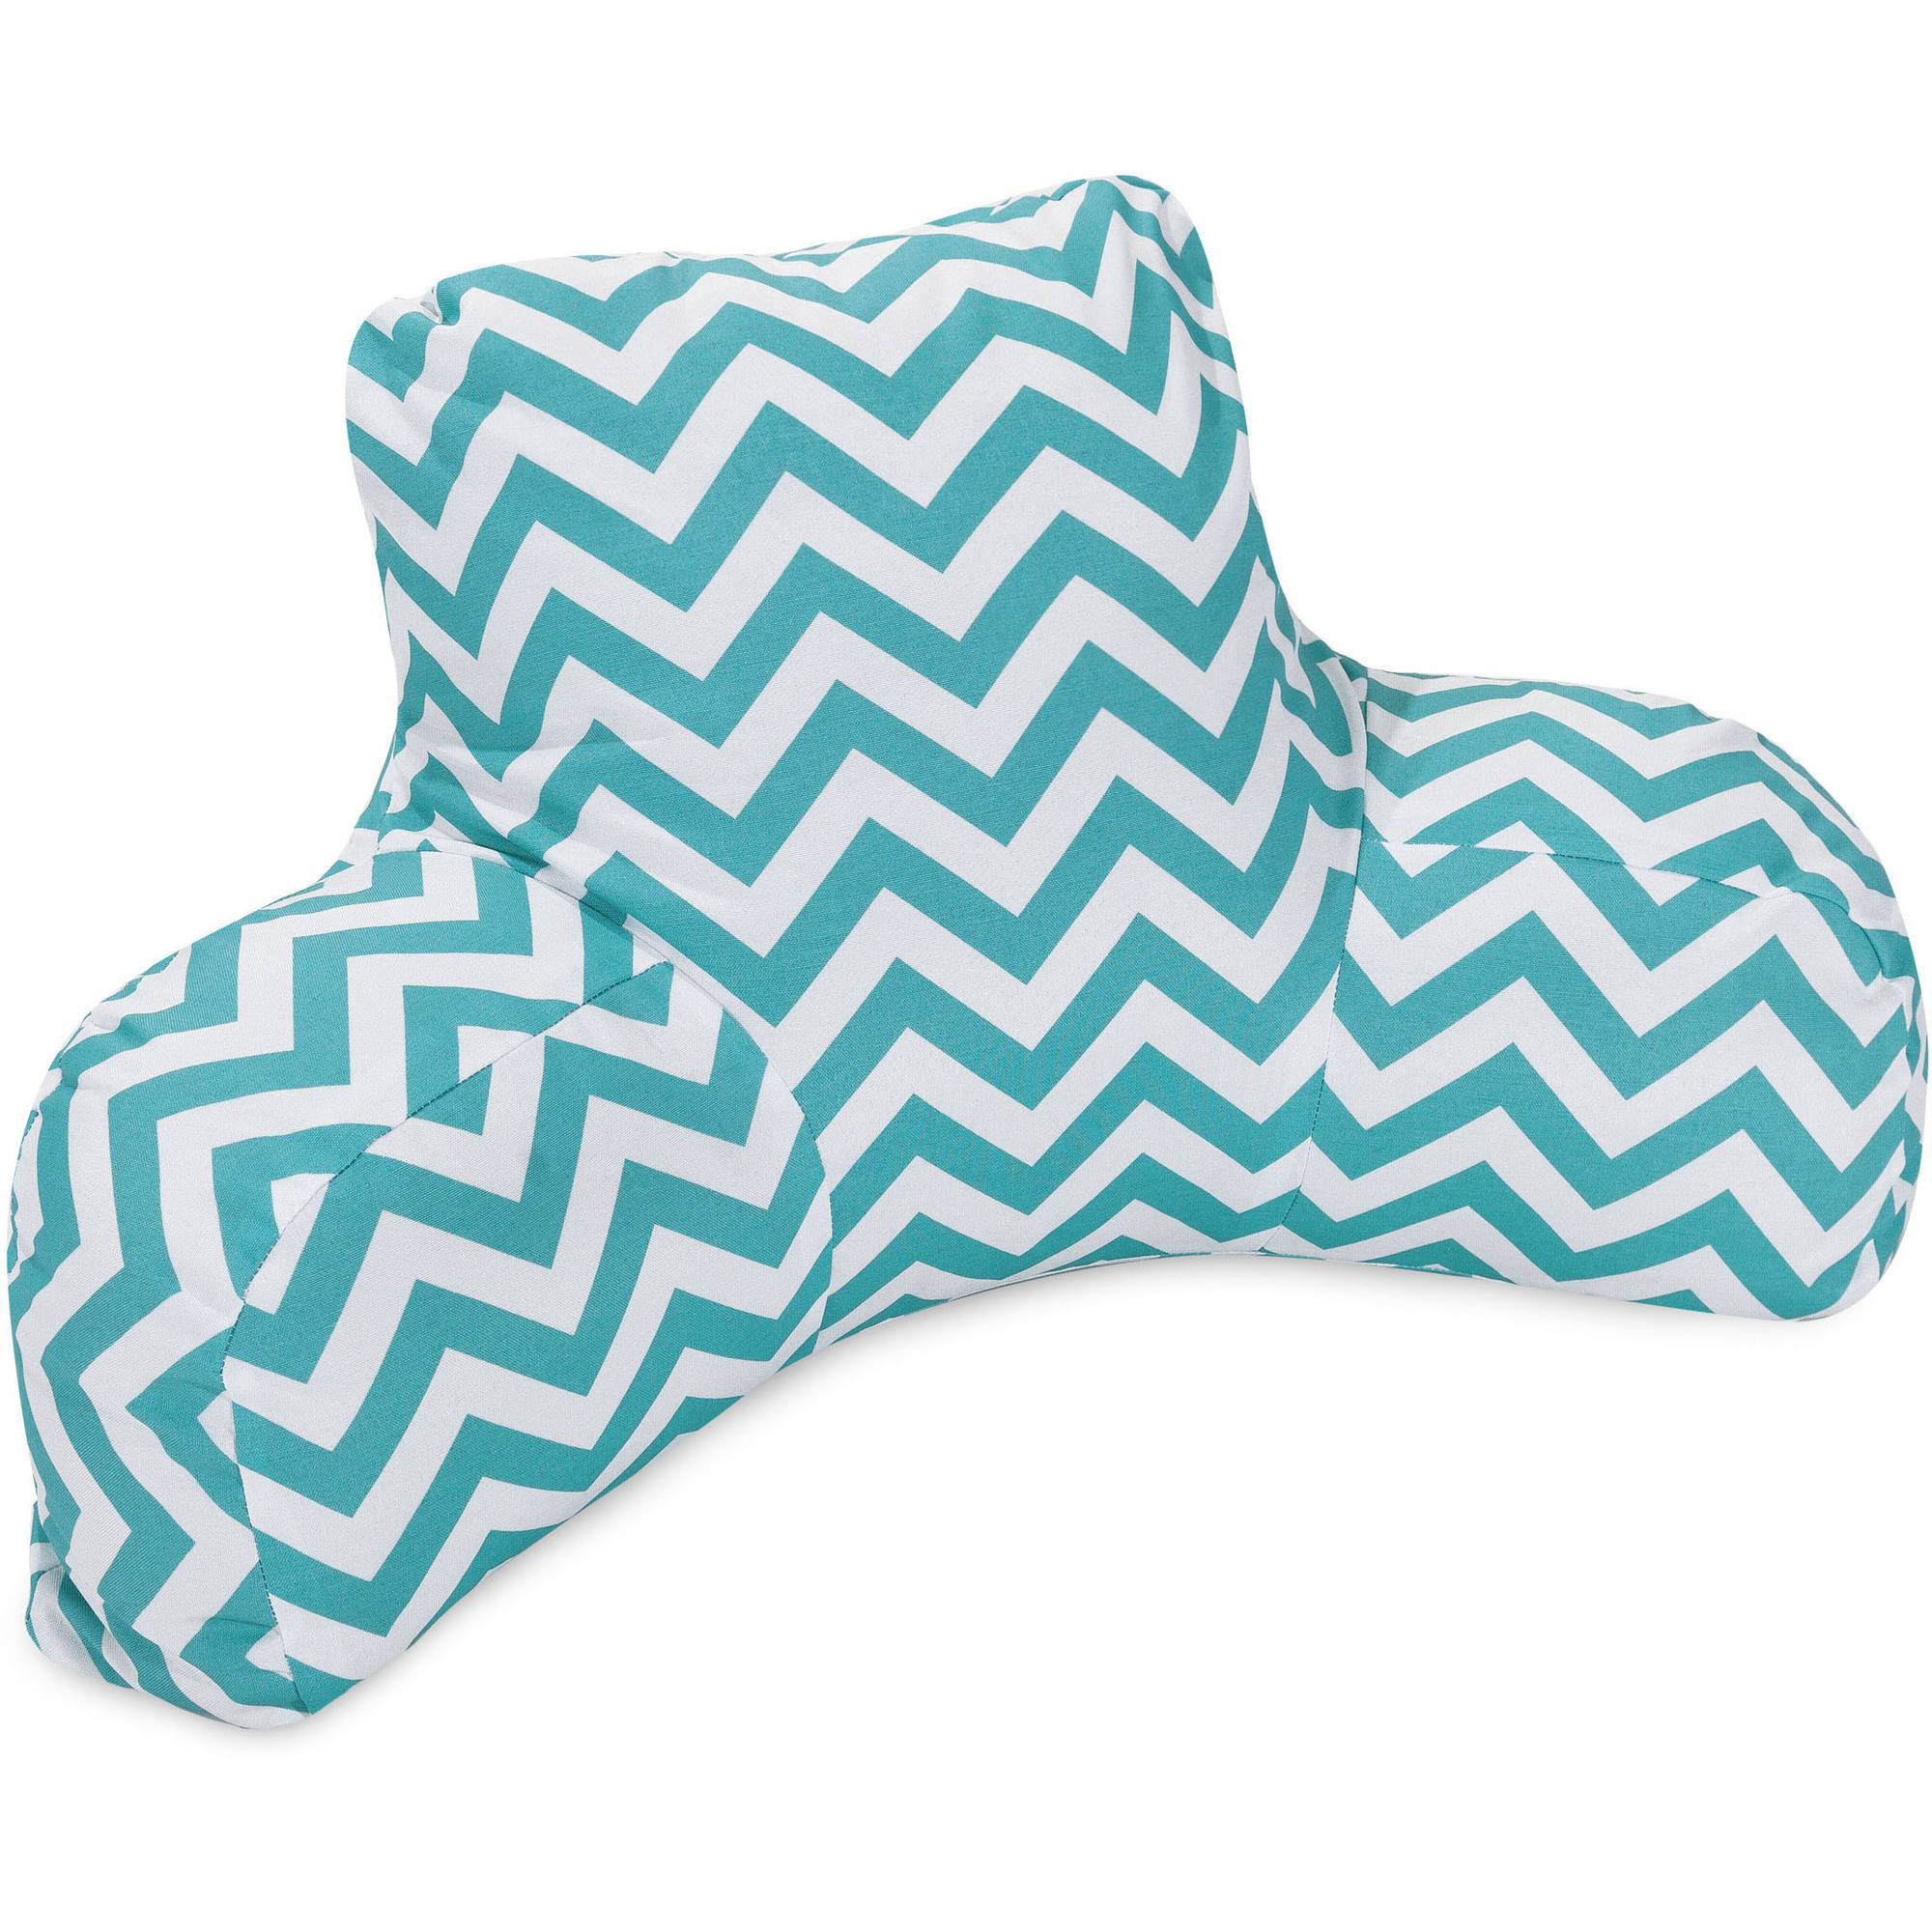 Majestic Home Goods Chevron Reading Pillow, Indoor/Outdoor